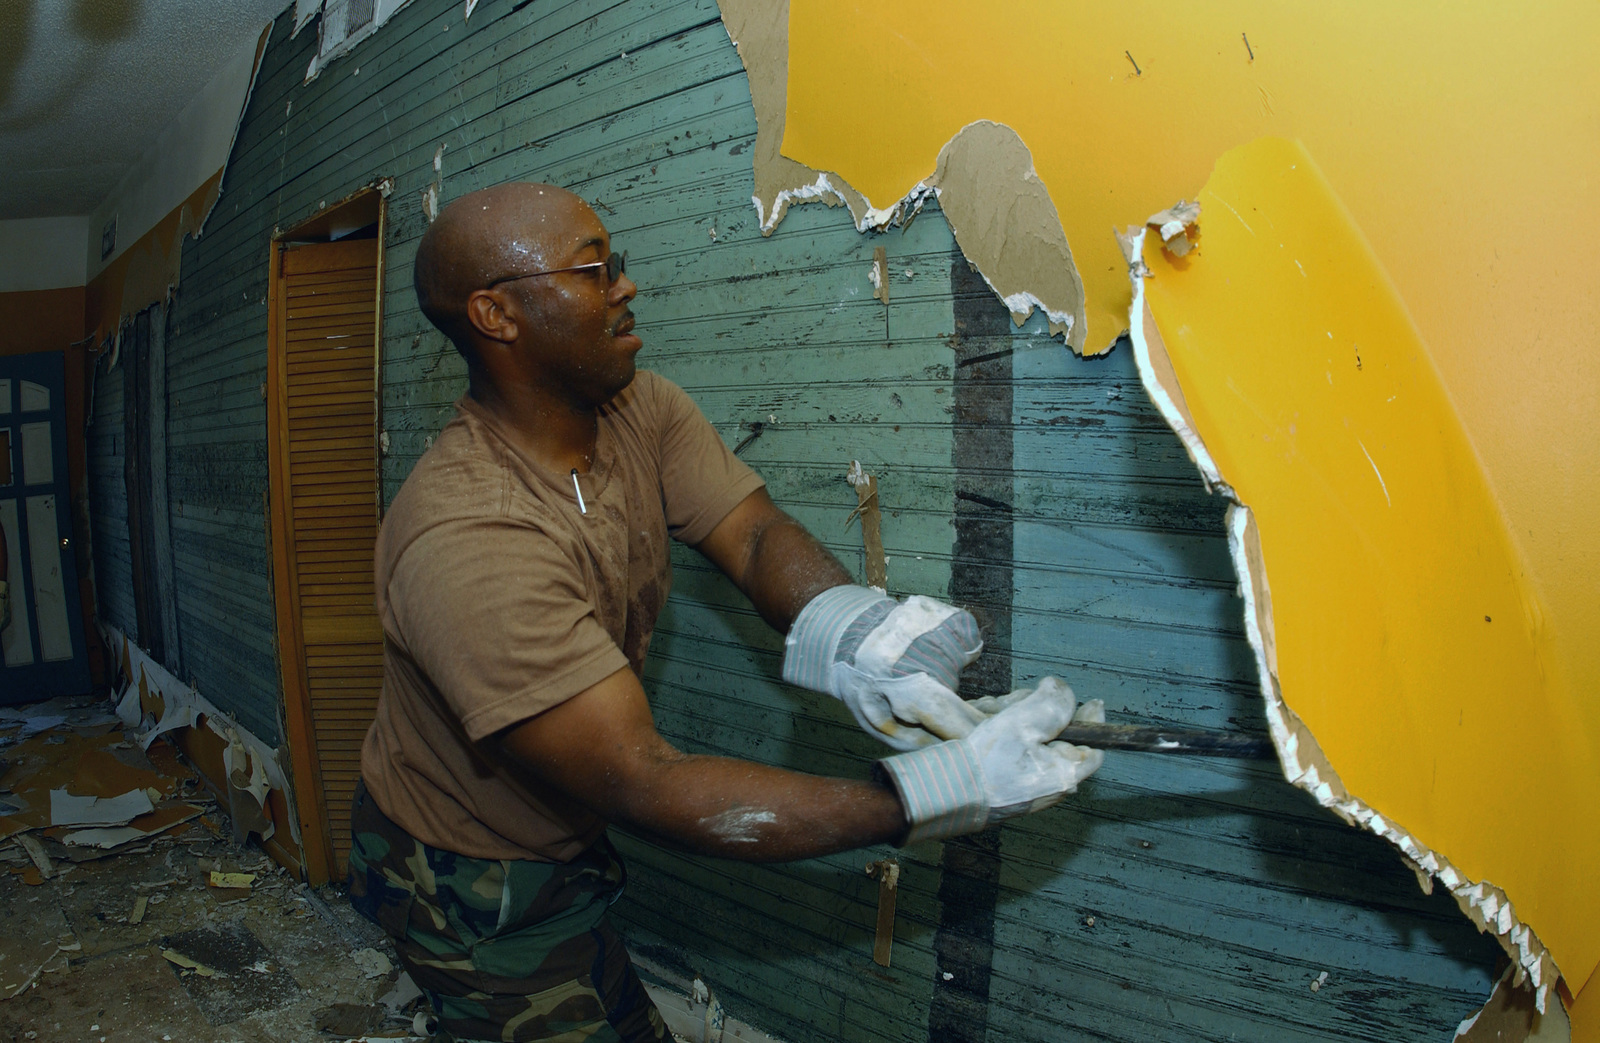 Mississippi Air National Guard (MSANG) MASTER Sergeant (MSGT) Felix Gines, 209th Combat Regional Training Center, removes plasterboard from a Hurricane Katrina flood damaged home in D'Iberville, Mississippi (MS). The plasterboard must be removed because of mold that grew on it after it is submerged in the floodwaters from the storm surge